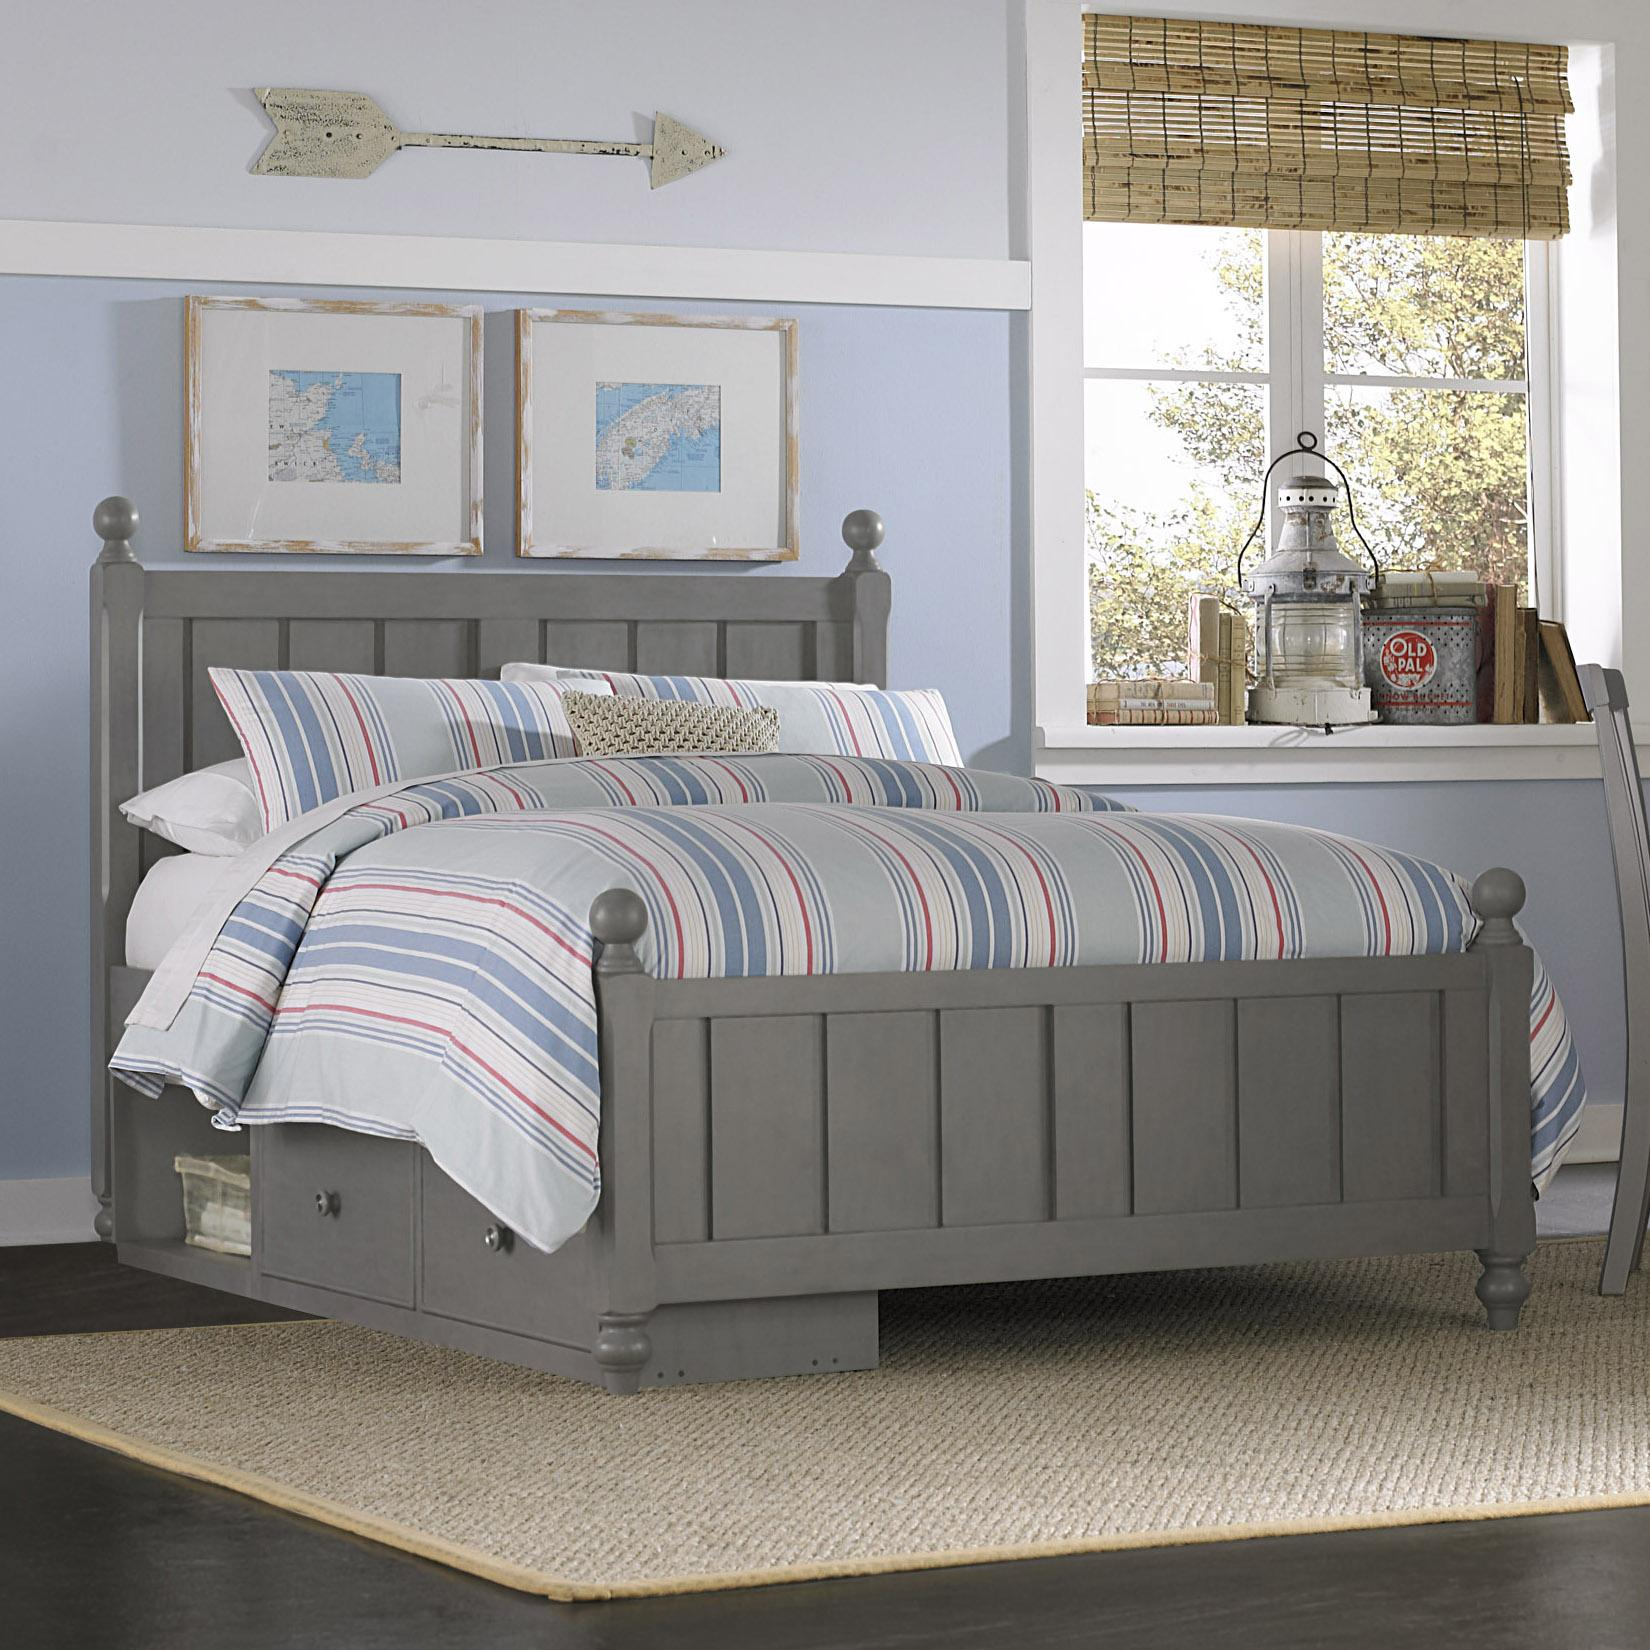 Full Kennedy (Panel) Bed + Storage Unit